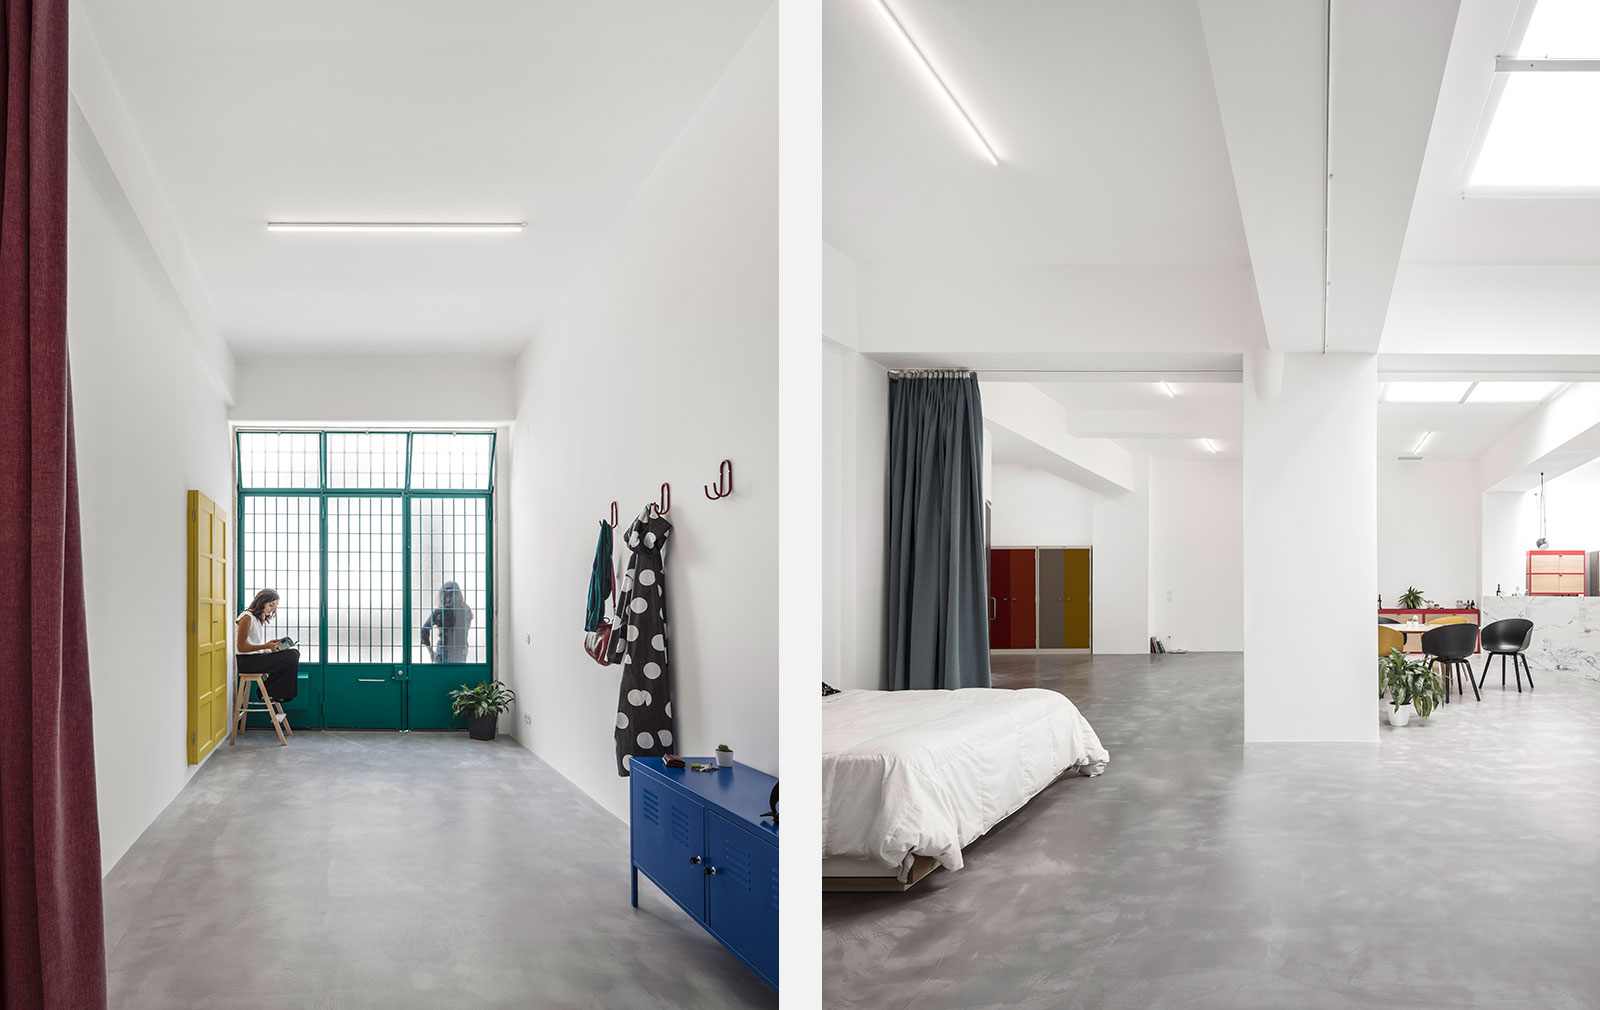 A garage conversion by Portuguese architecture practice Atelier Fala